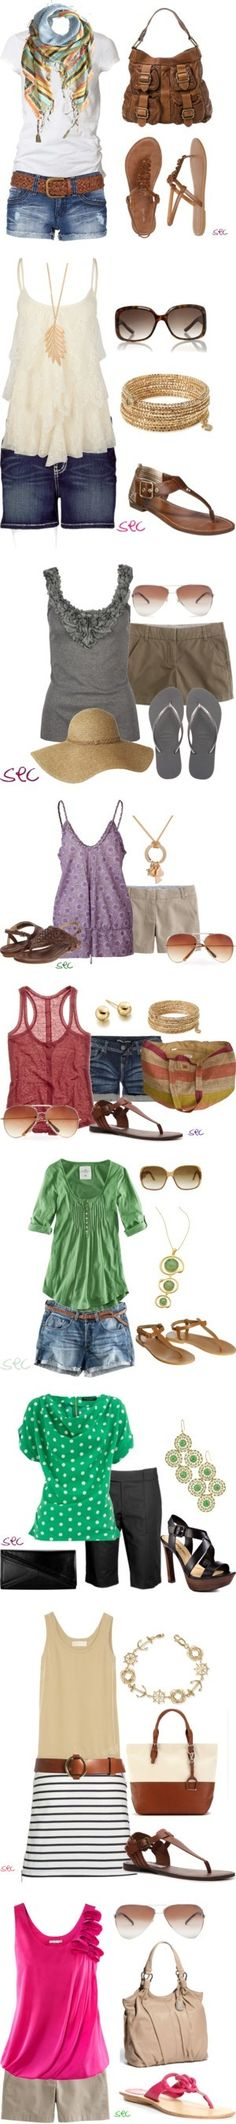 Great summer styles!